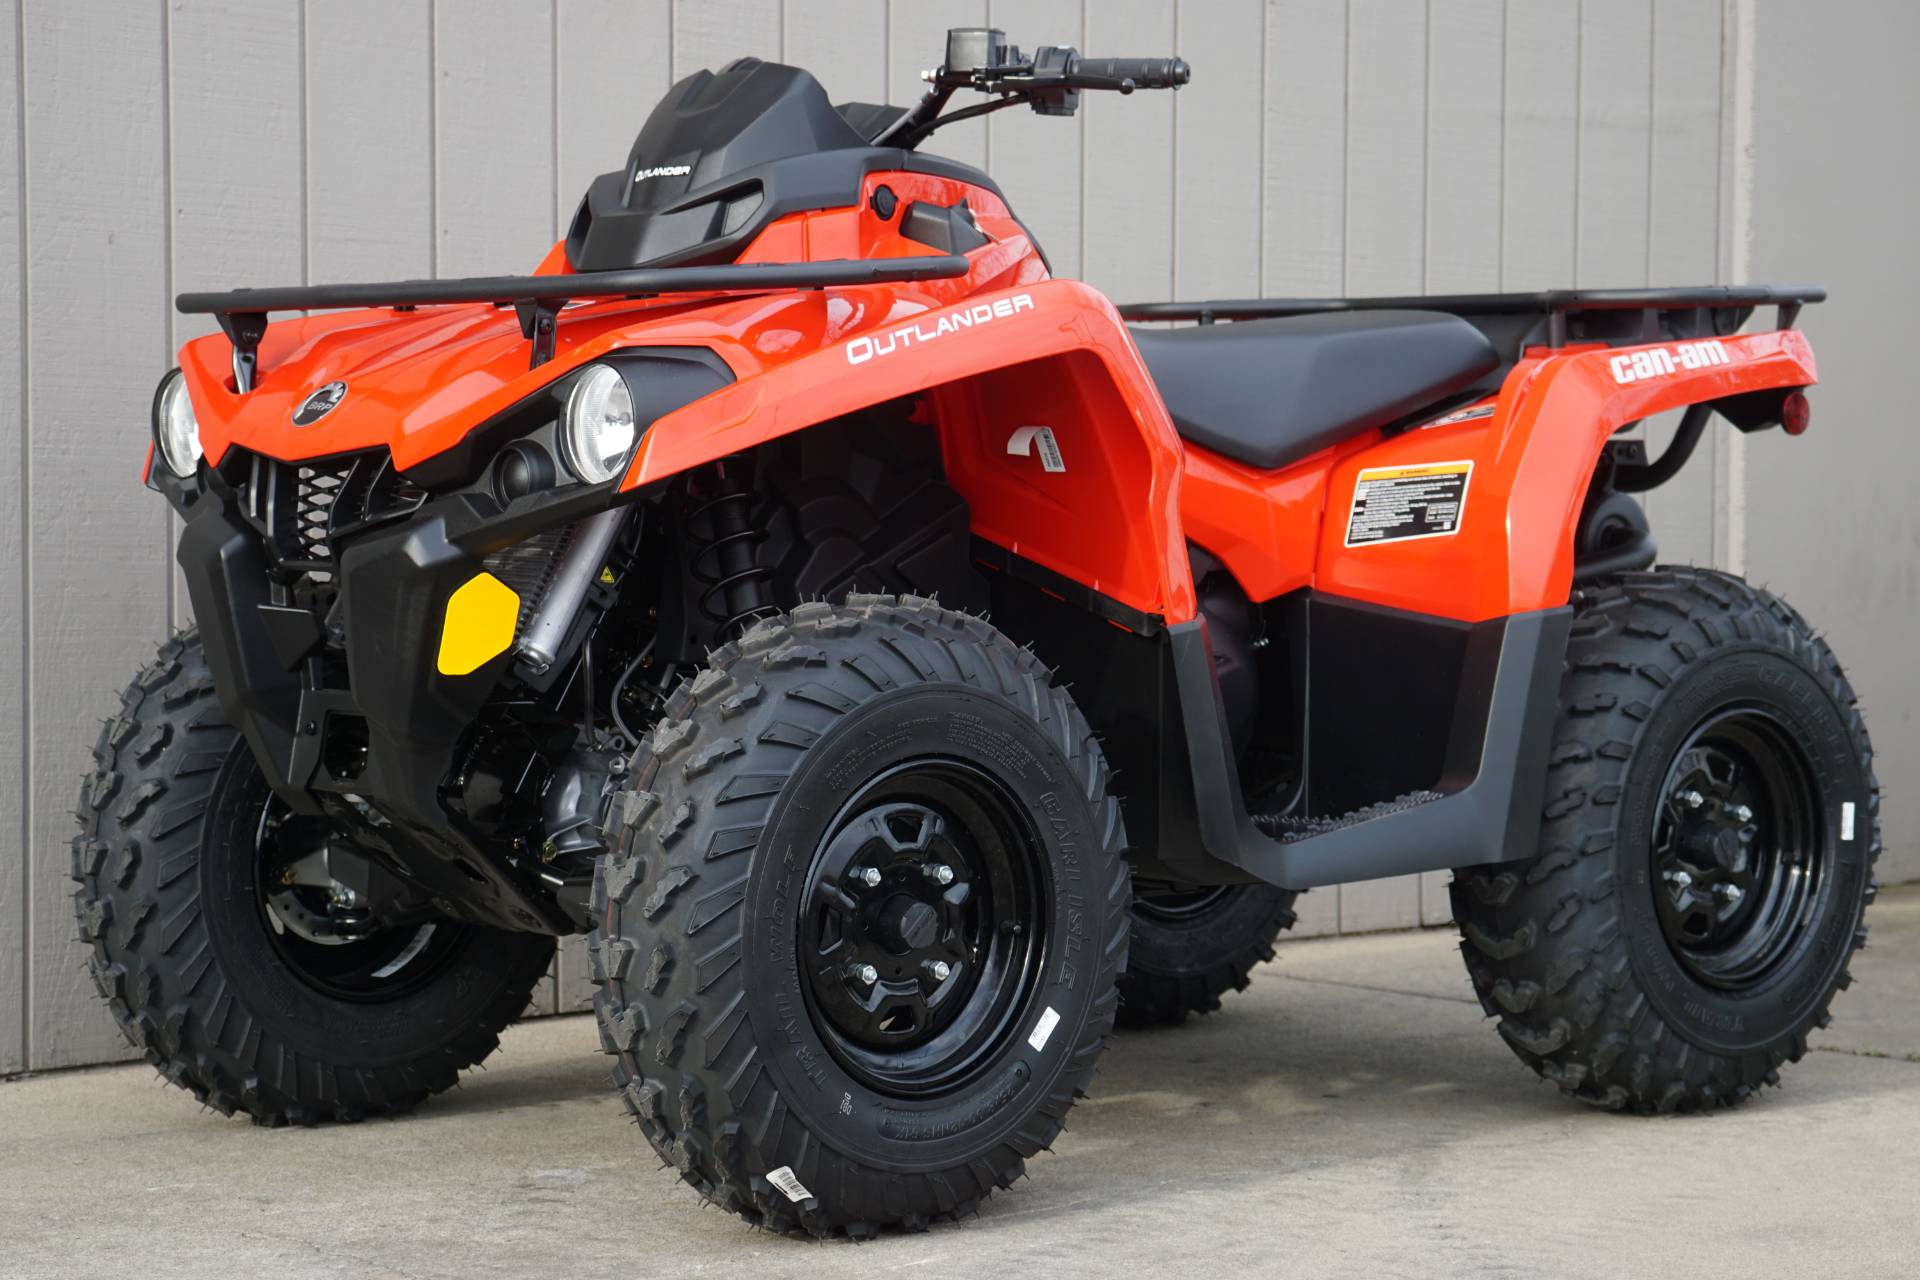 2019 Can-Am Outlander 450 for sale 79101